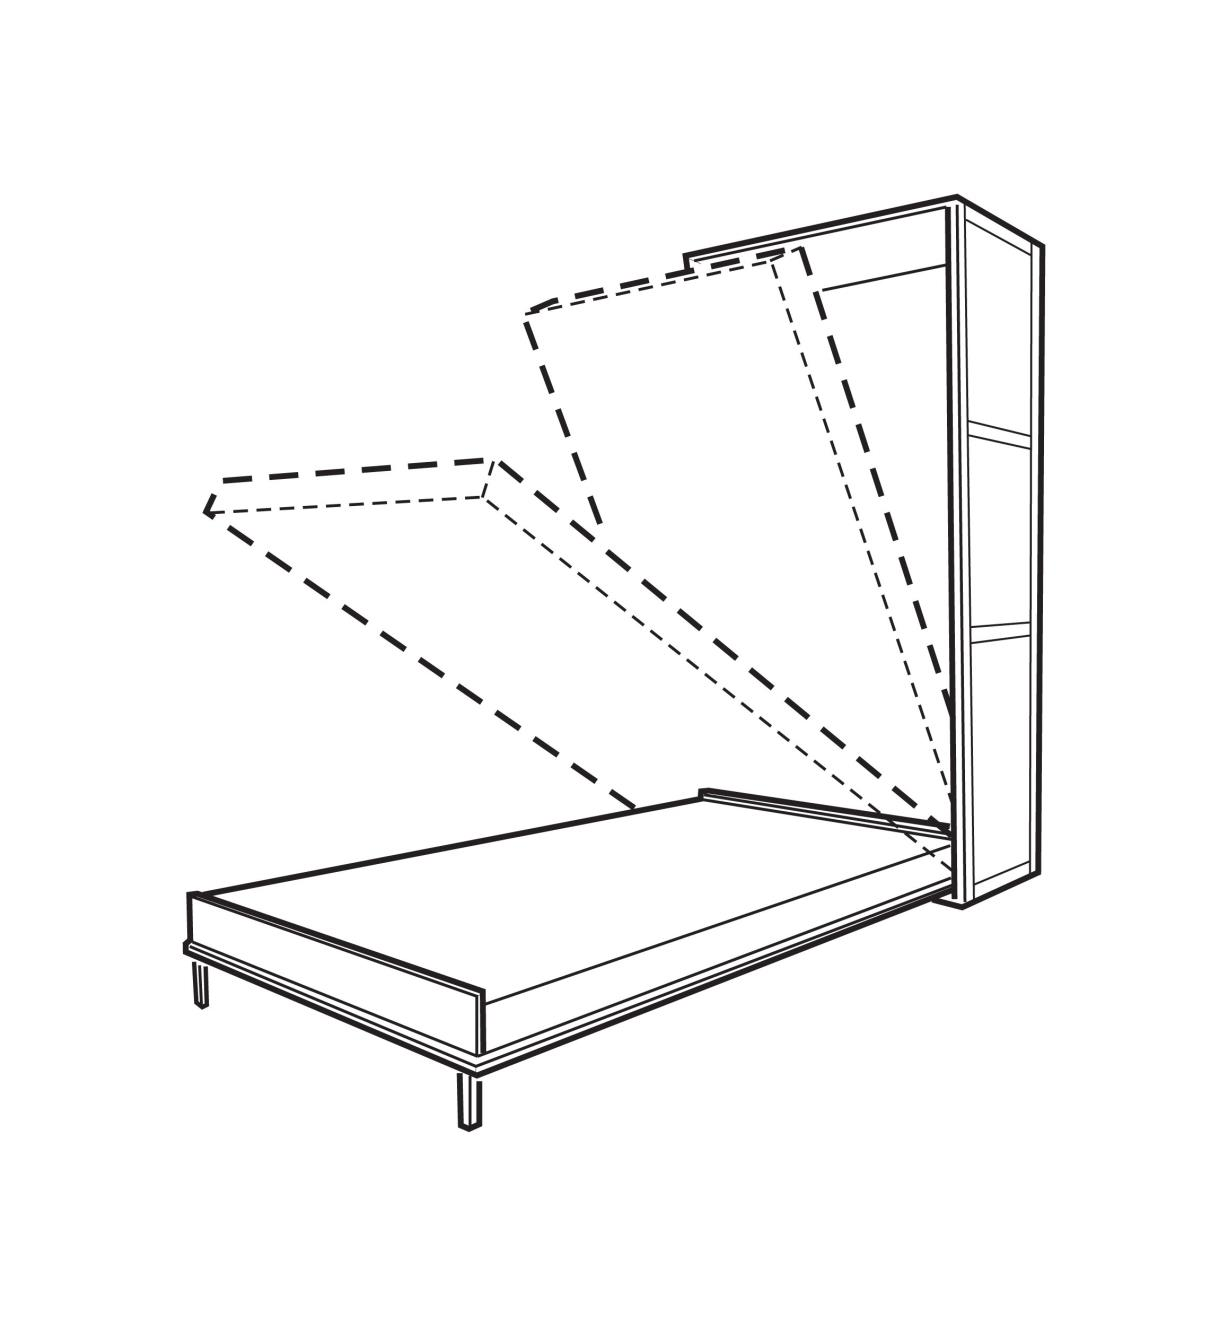 Illustration of Fold-Down Bed being lowered from a cabinet